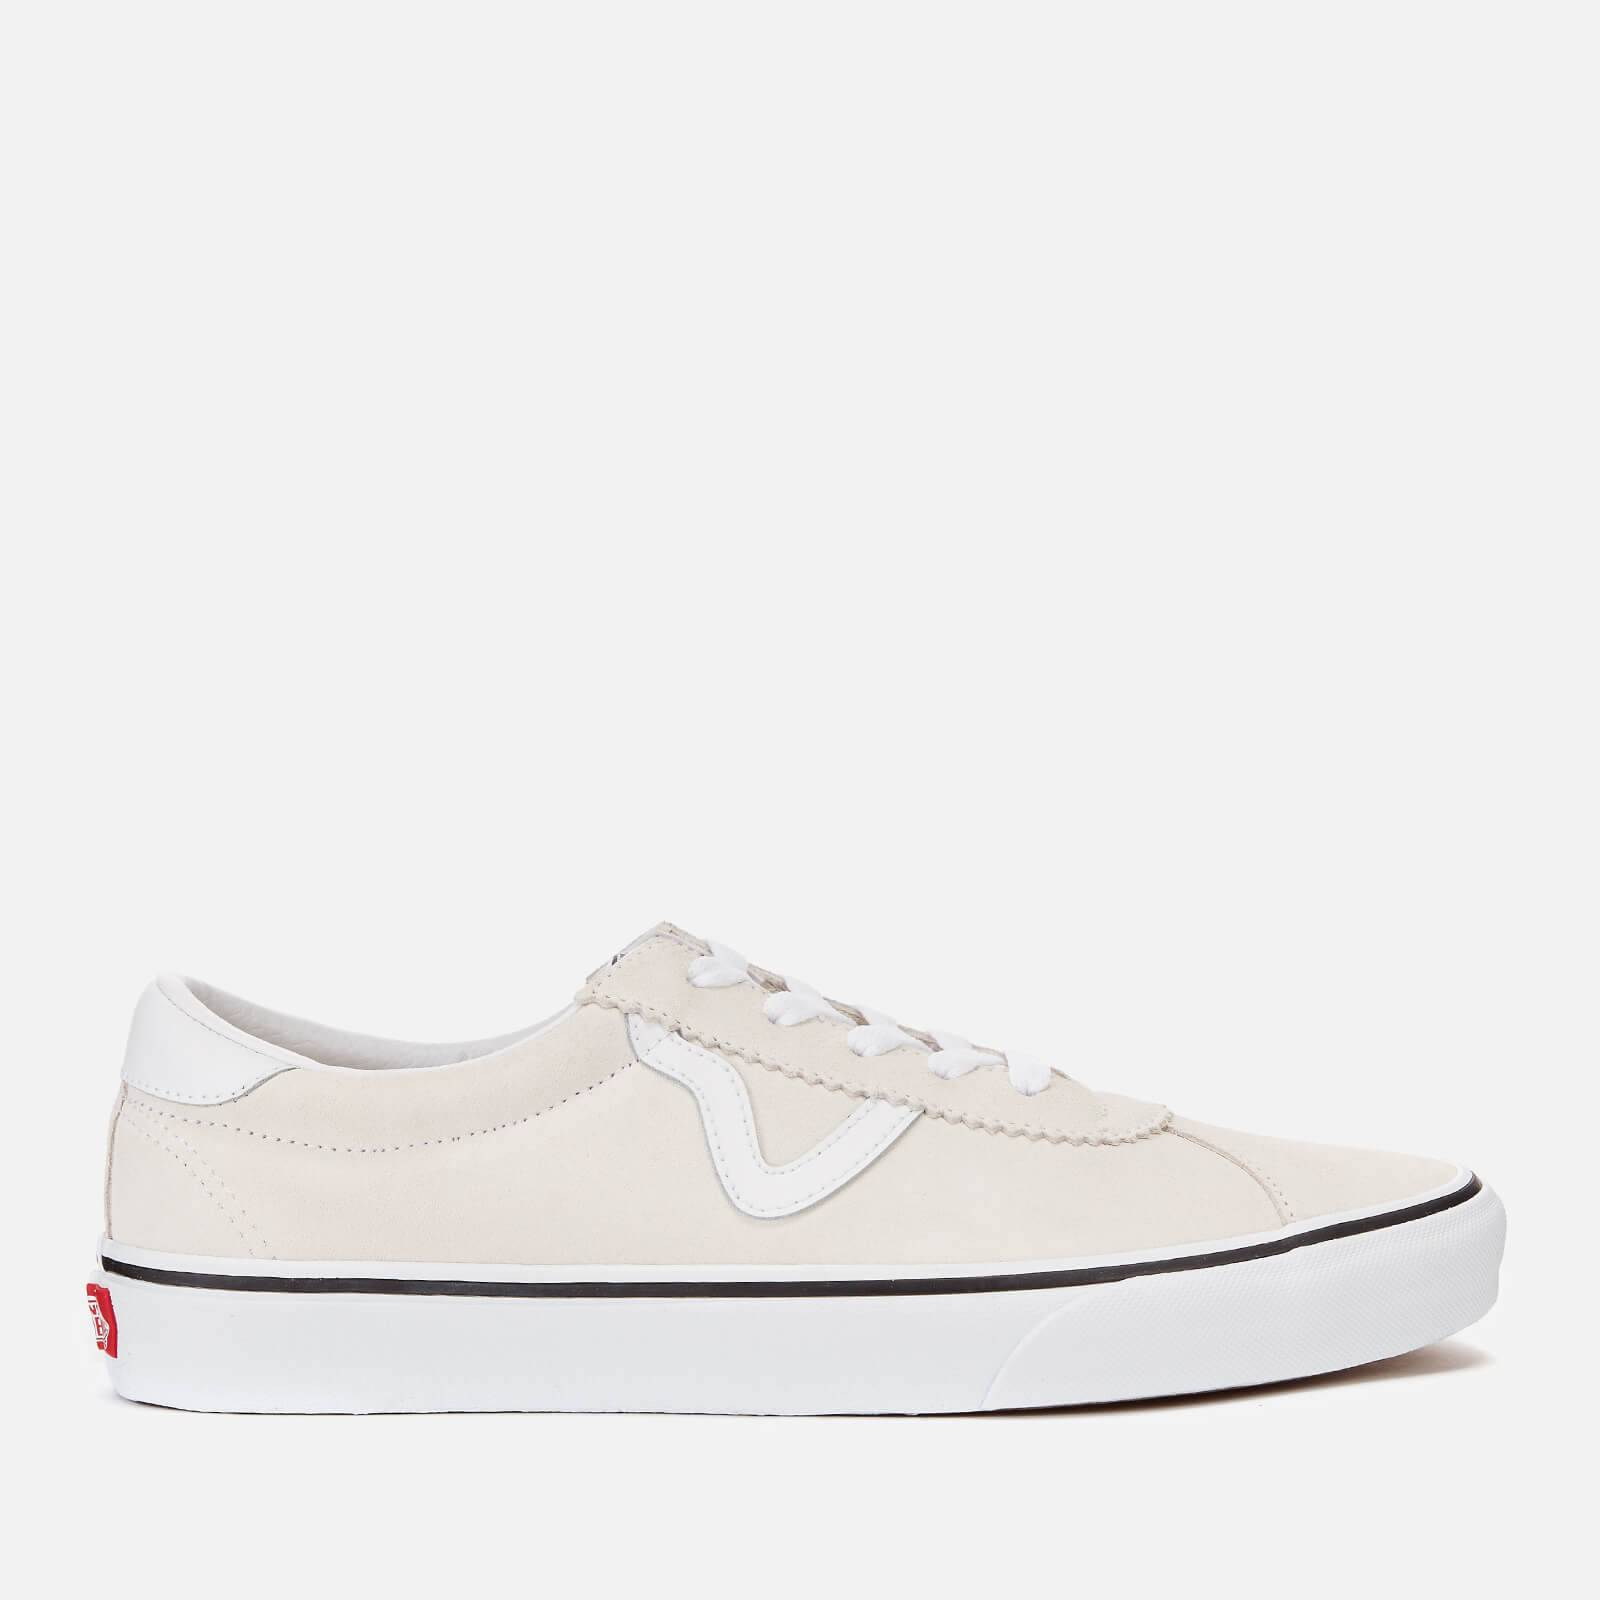 Vans Sport Suede Trainers - White - UK 9